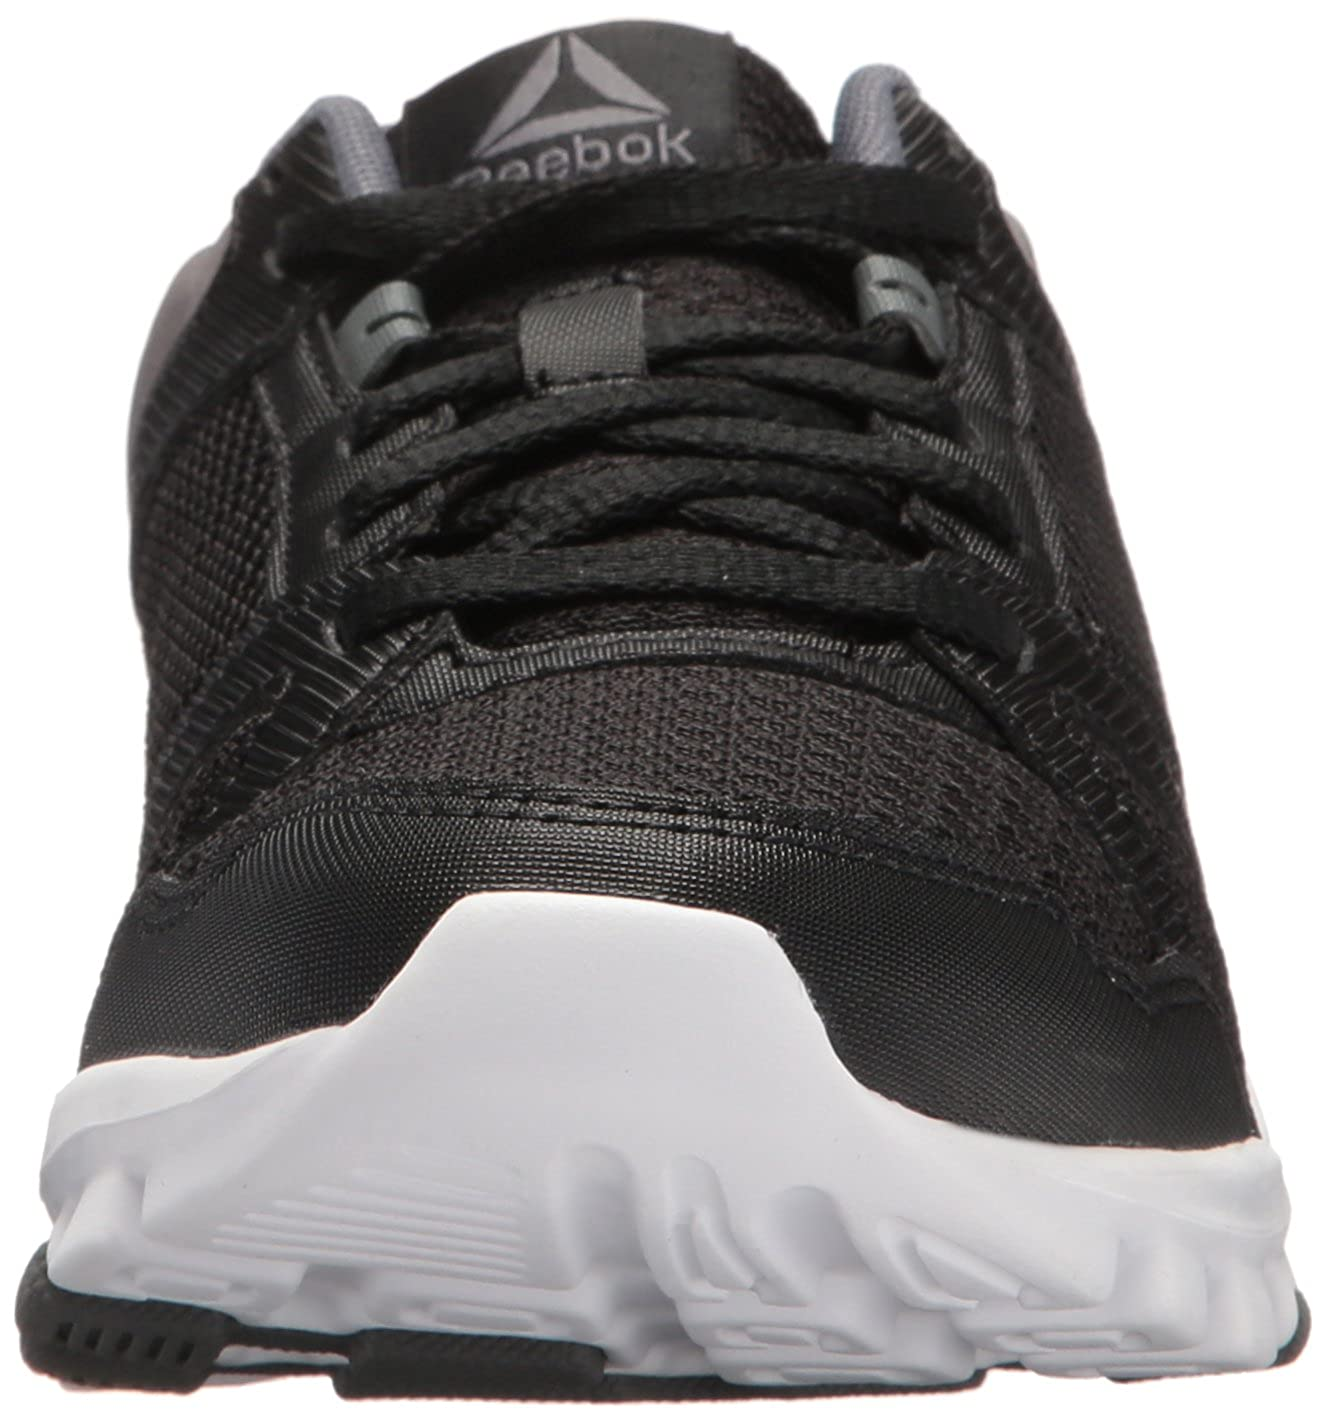 Reebok Women s Yourflex Trainette 10 Mt Cross Trainer Black  Amazon.co.uk   Shoes   Bags 7f52c35f5